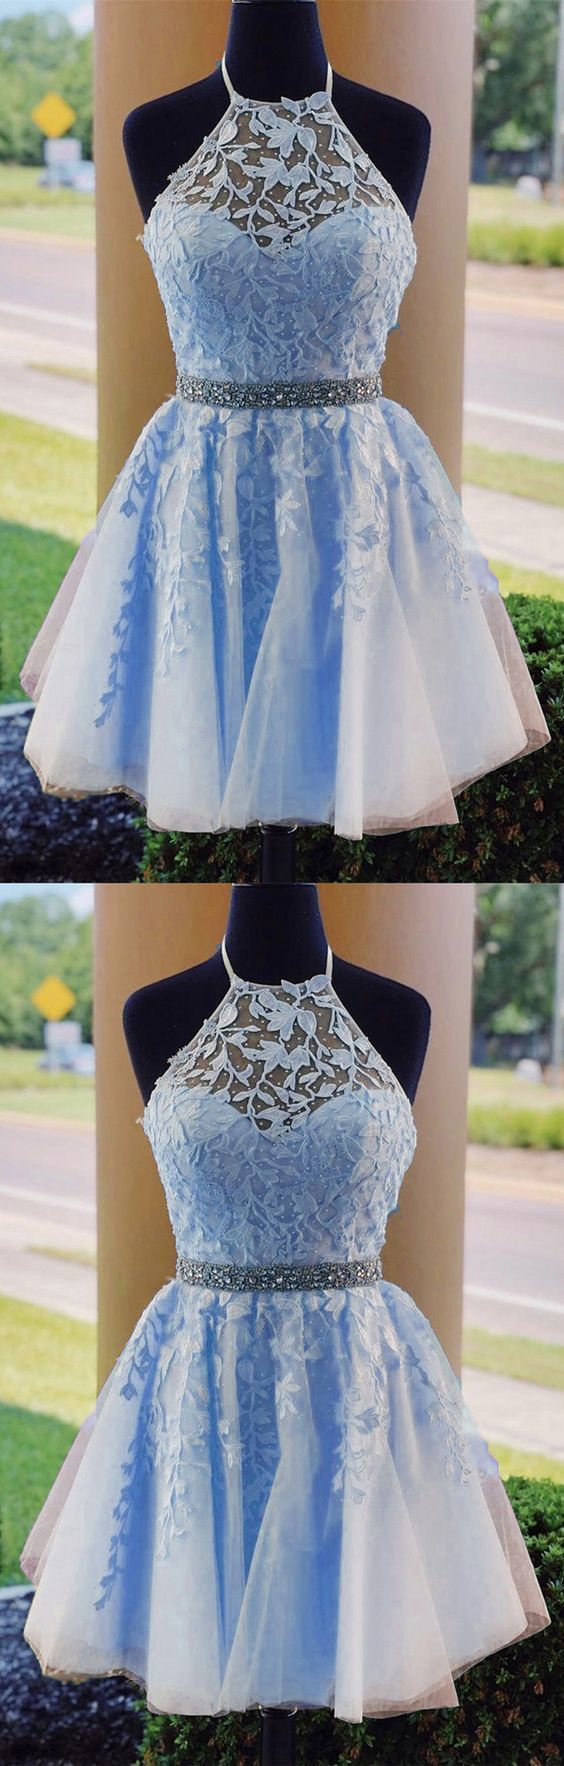 Light Blue Halter Tulle Short Homecoming Dress, Appliques Prom Dresses